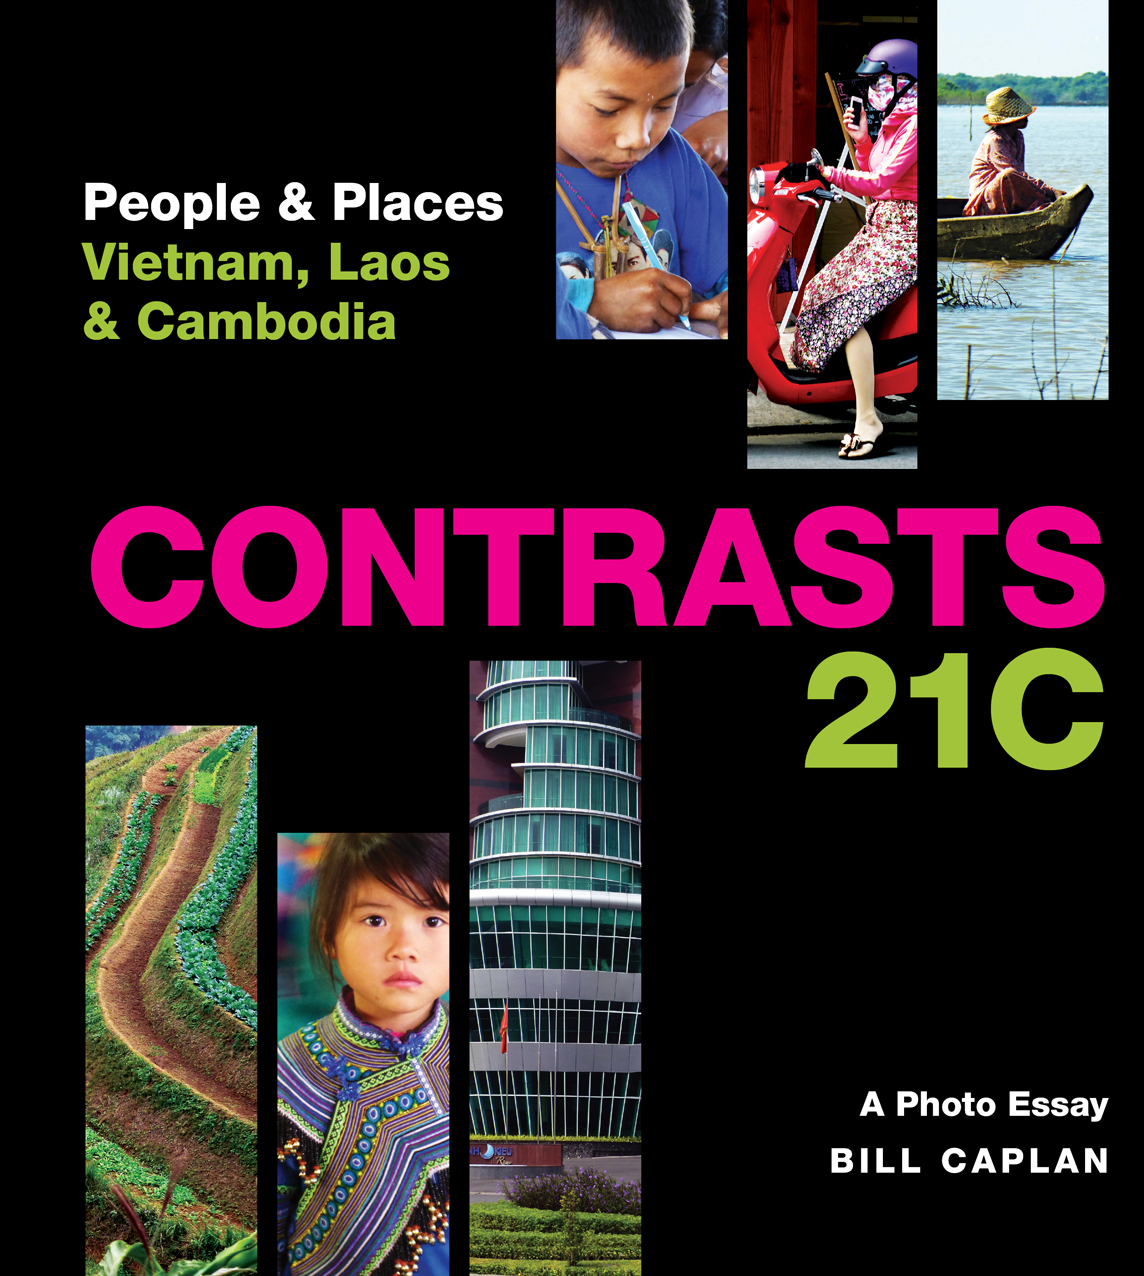 Contrasts21c: People & Places